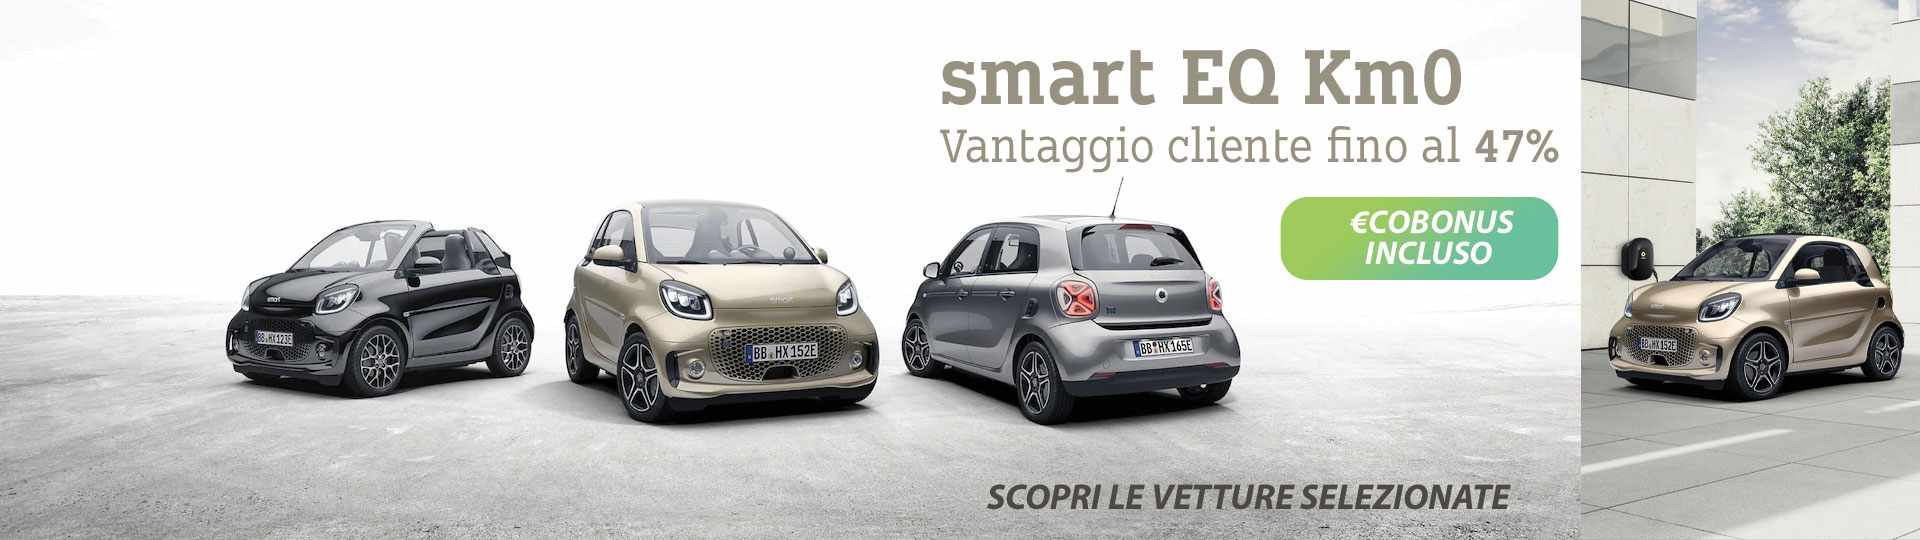 header_smart_km0_marzo_2021.jpg